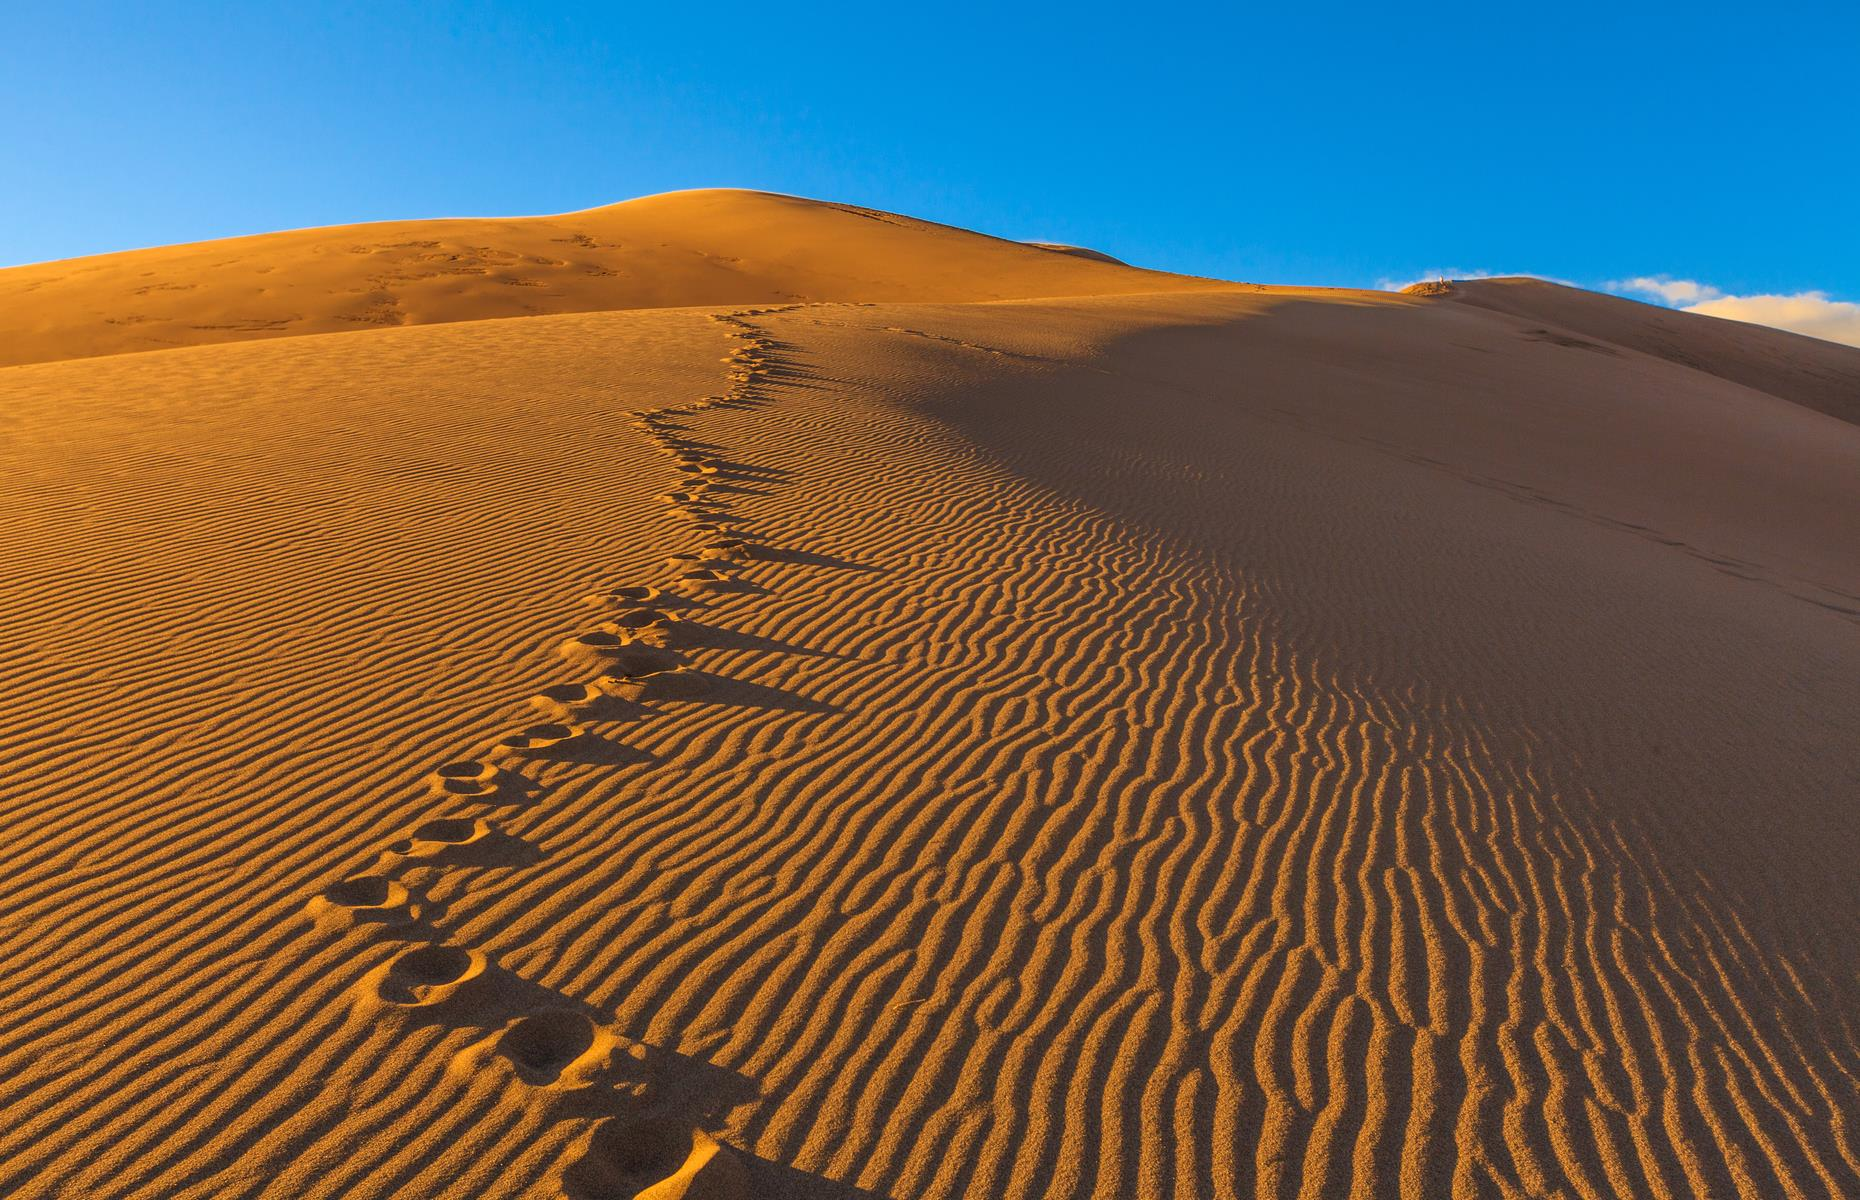 Slide 60 of 61: You'd be forgiven for thinking these vast, golden dunes were in the Sahara Desert but they're actually in Colorado, in the aptly named Great Sand Dunes National Park and Preserve. The loftiest dunes in North America, the sand mountains are framed by blue skies and flanked by snow-capped peaks – they're best explored on a sled or a sand board, or after dark when the inky sky above is flecked with stars.  Secret wonders hidden in the world's largest deserts